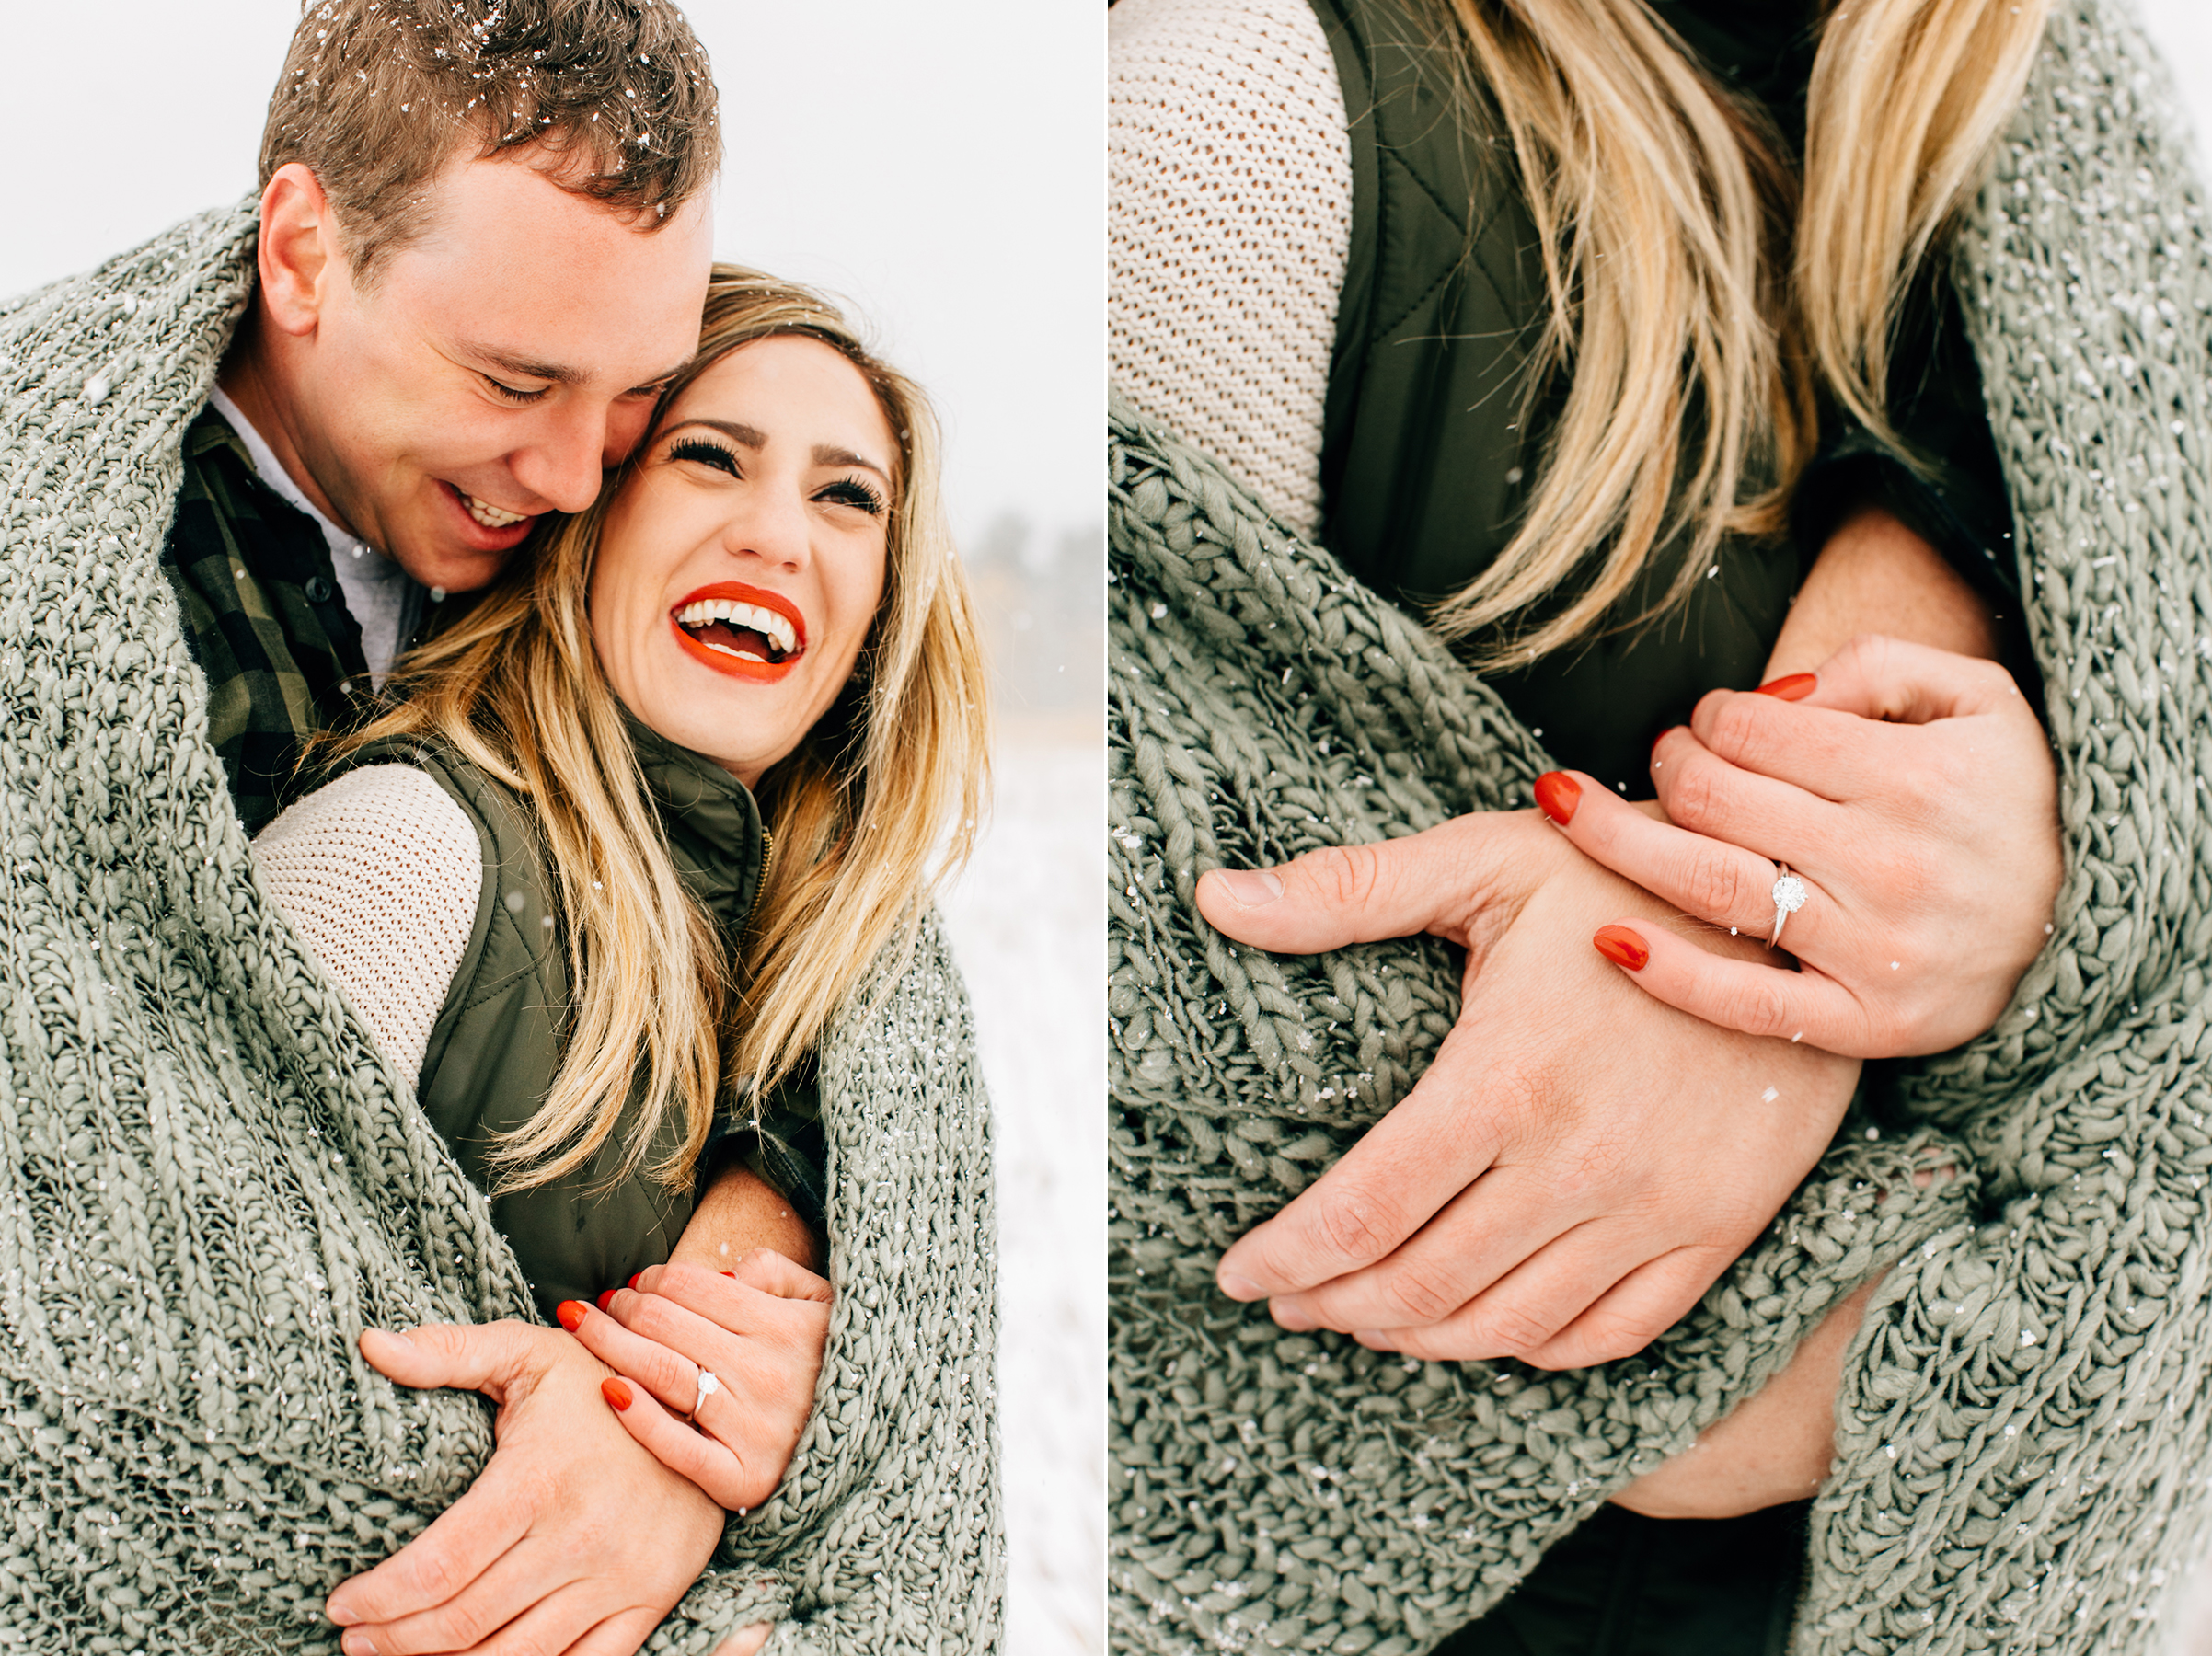 Colorado engagement-Katie Stoops Photography02.jpg